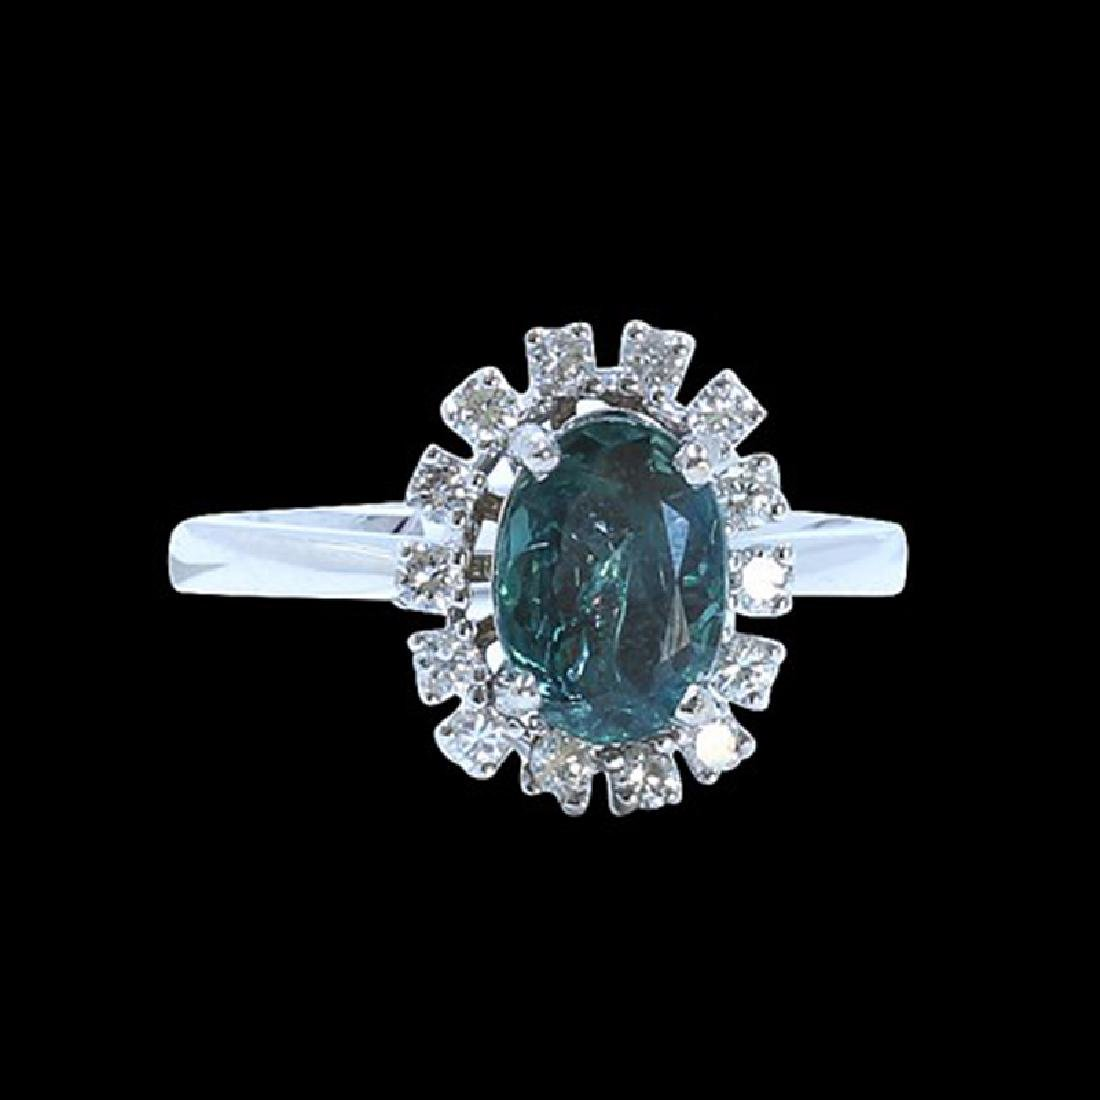 1.43CT NATURAL ALEXANDRITE 14K WHITE GOLD RING